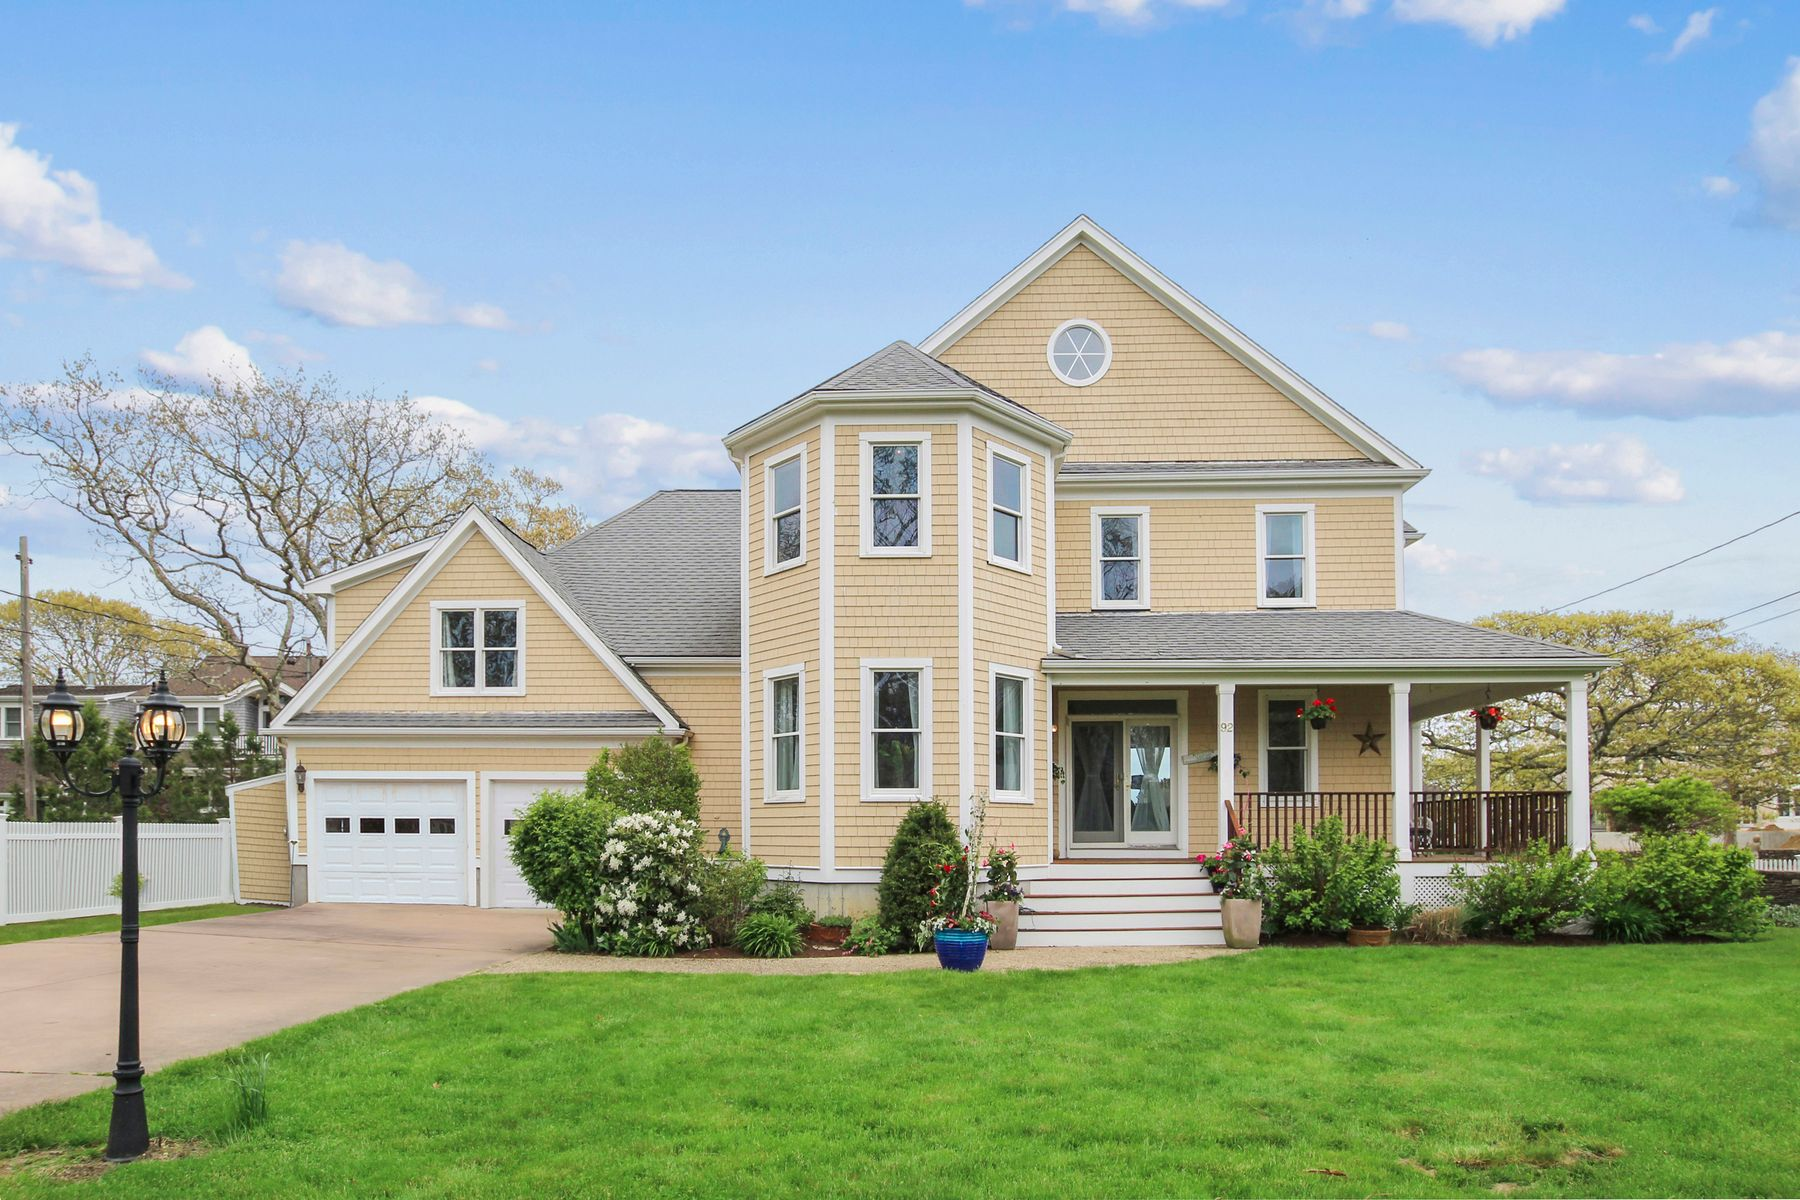 Single Family Homes for Active at Water Views And Beach Rights 92 Bridge Street East Falmouth, Massachusetts 02536 United States